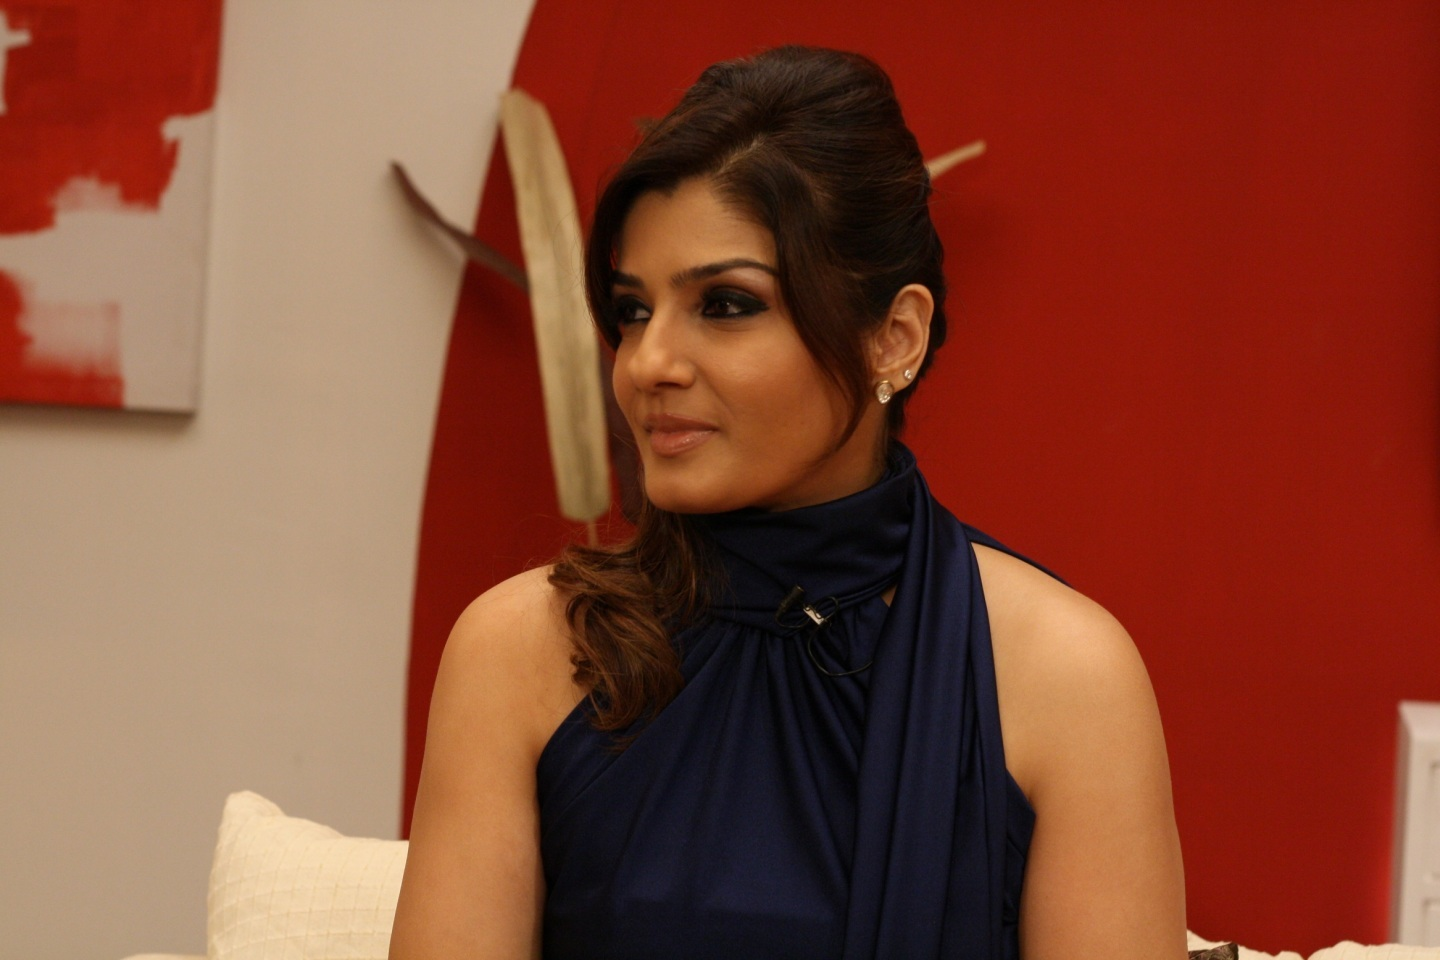 Raveena Tandon Wallpapers Free Download